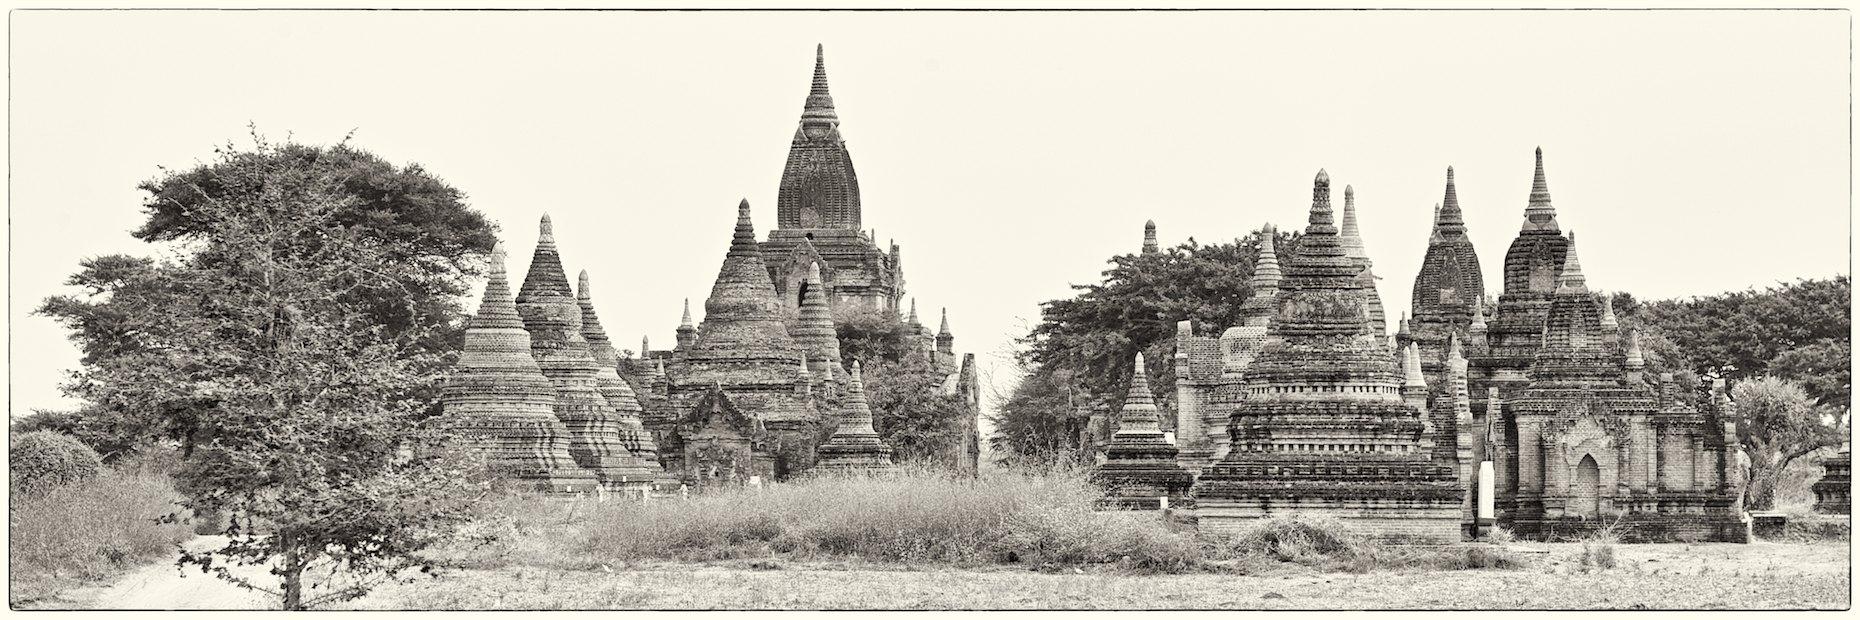 Burma Bagan landscape panorama black and white